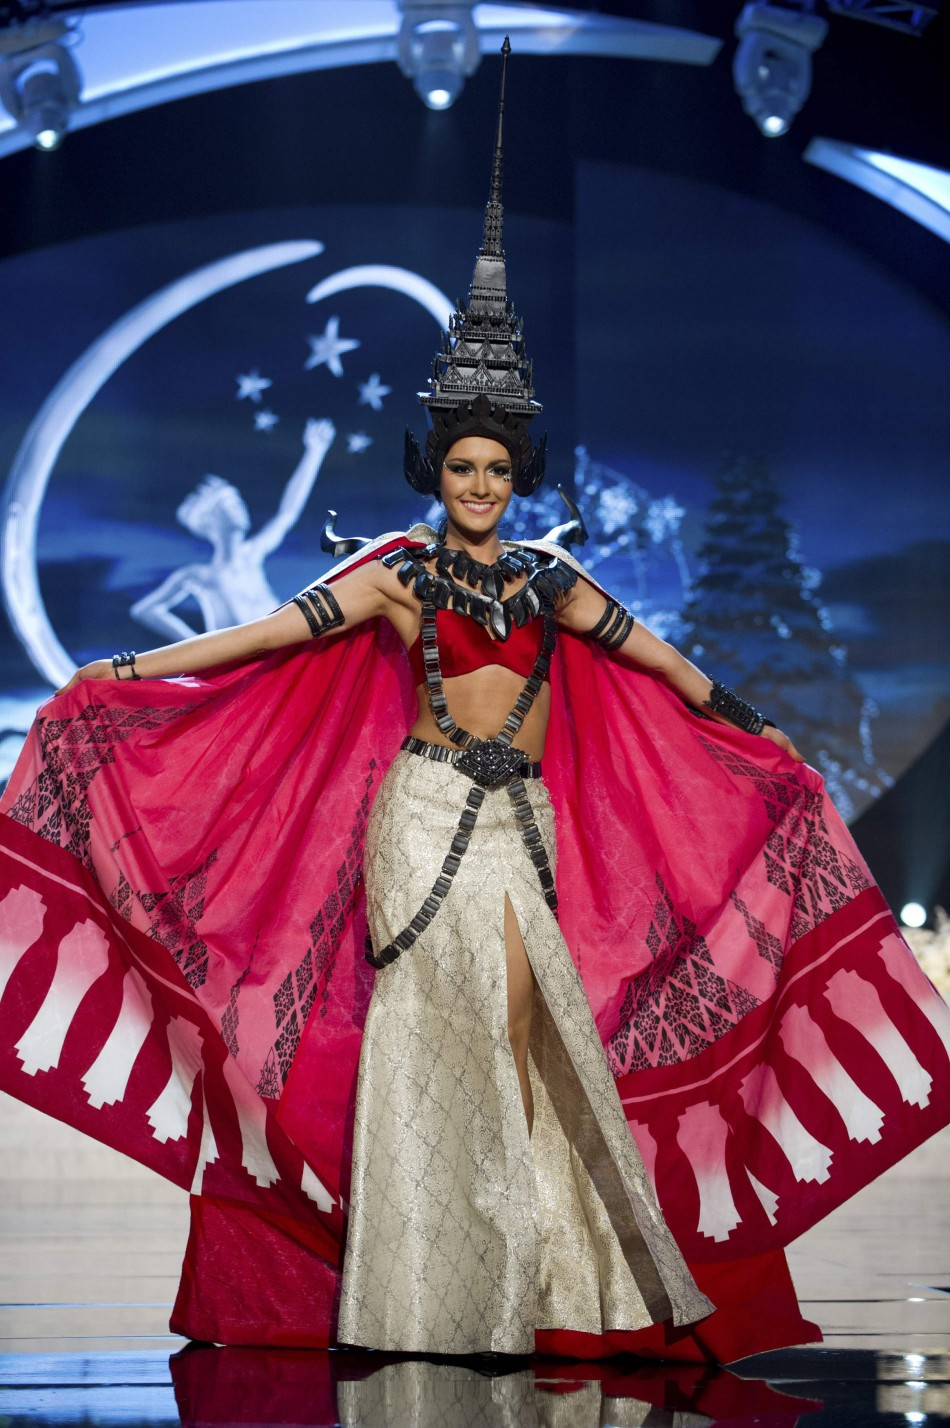 Miss Thailand Farida Waller on stage at the 2012 Miss Universe National Costume Show at PH Live in Las Vegas